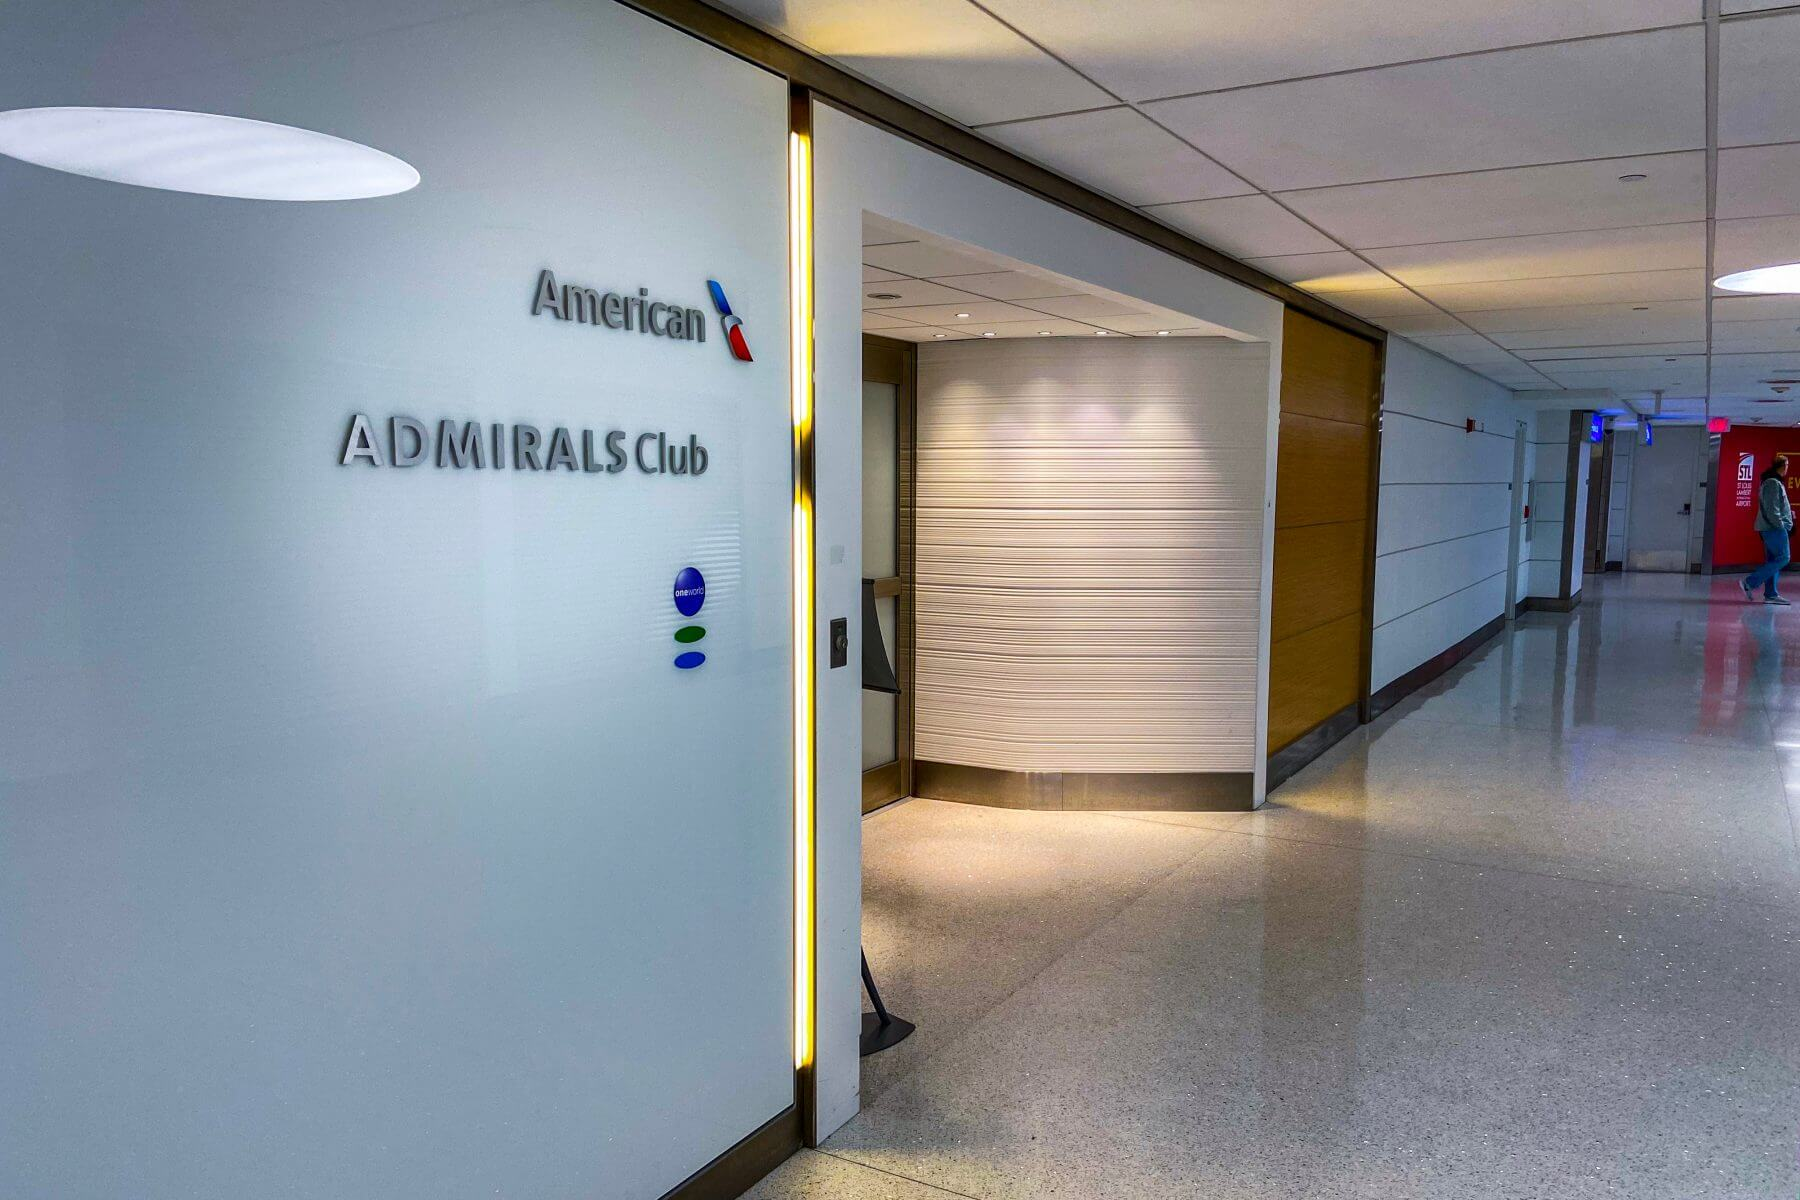 The easiest way to get American Airlines airport lounge access (and share it, too)